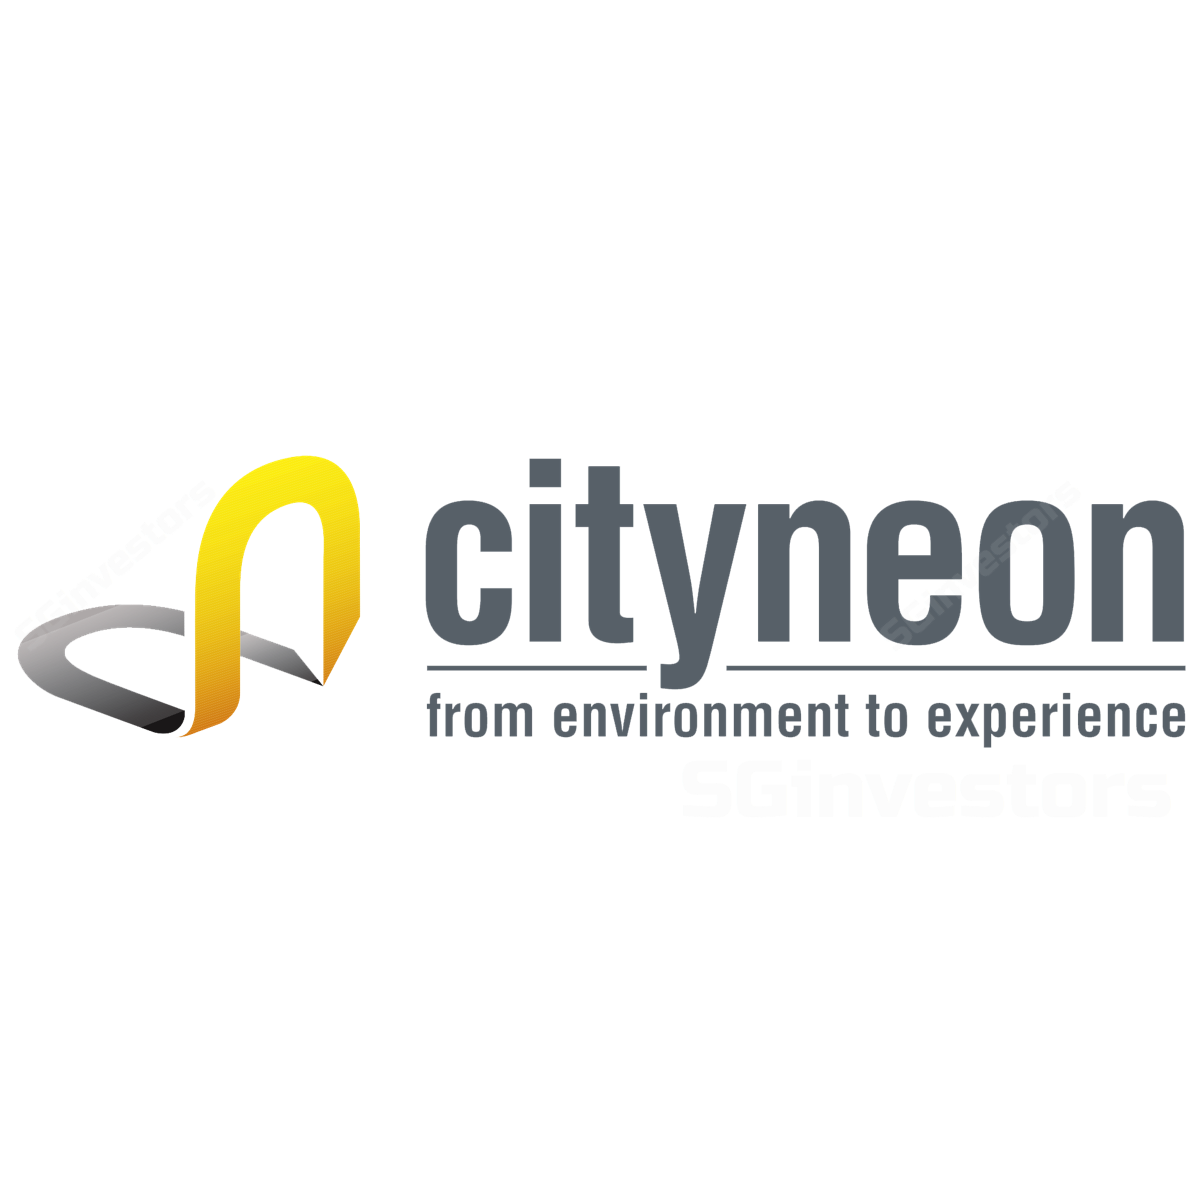 CITYNEON HOLDINGS (CITN SP) - UOB Kay Hian 2017-08-16: 1H17 Results In Line; Intellectual Property Driving Growth